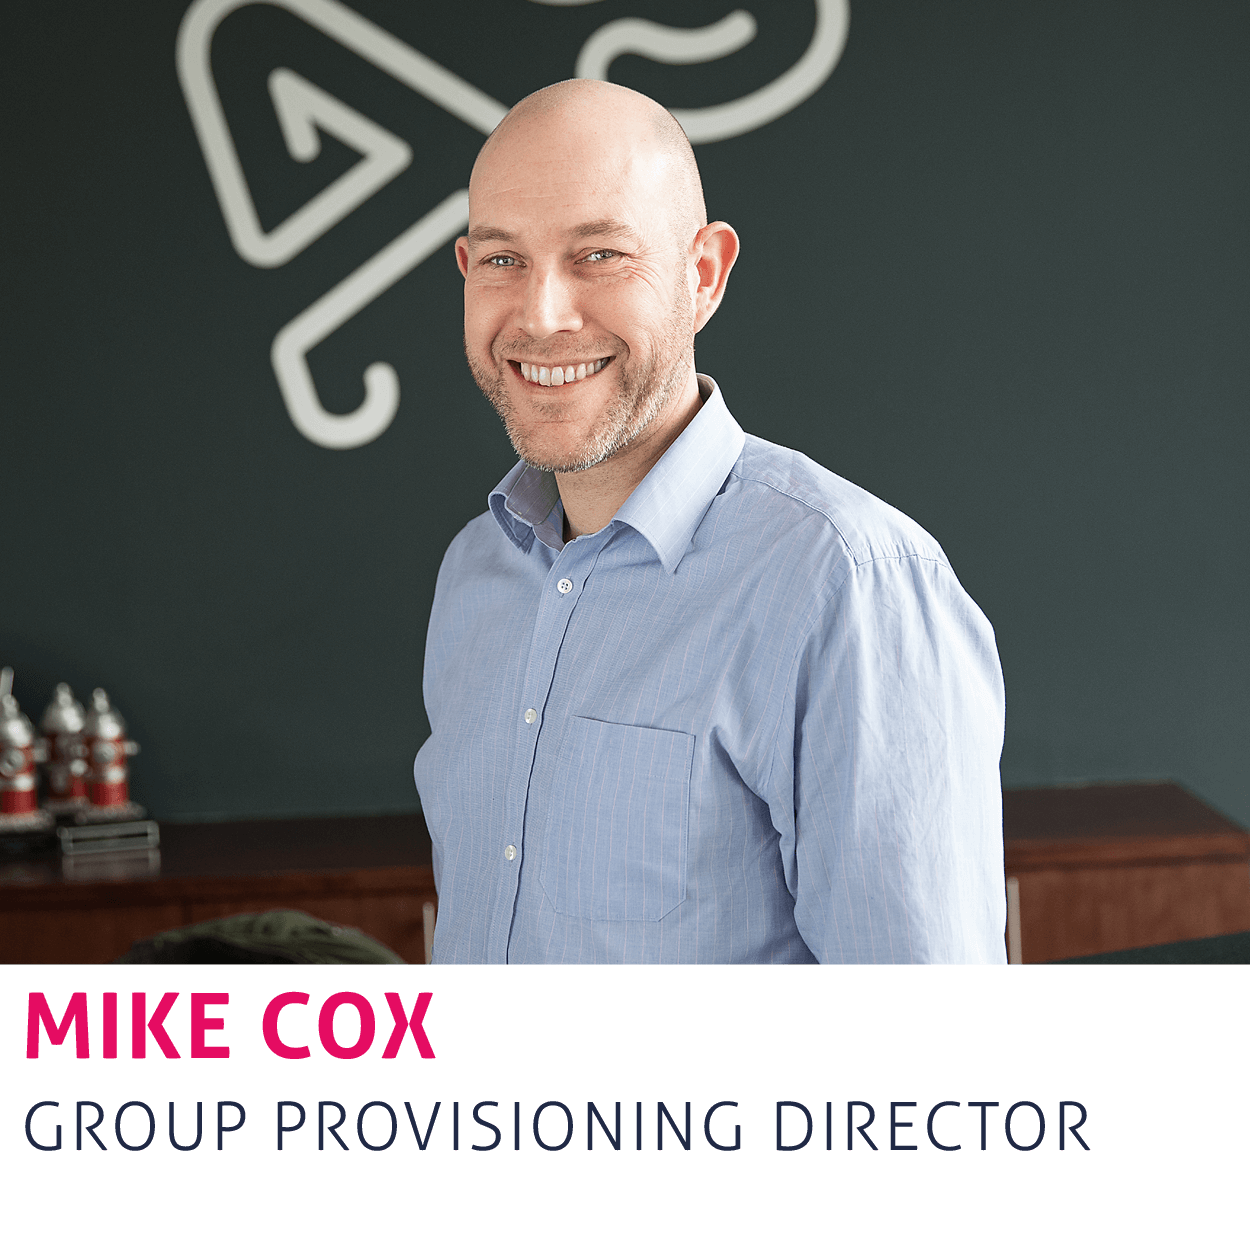 Mike Cox, Group Provisioning Director